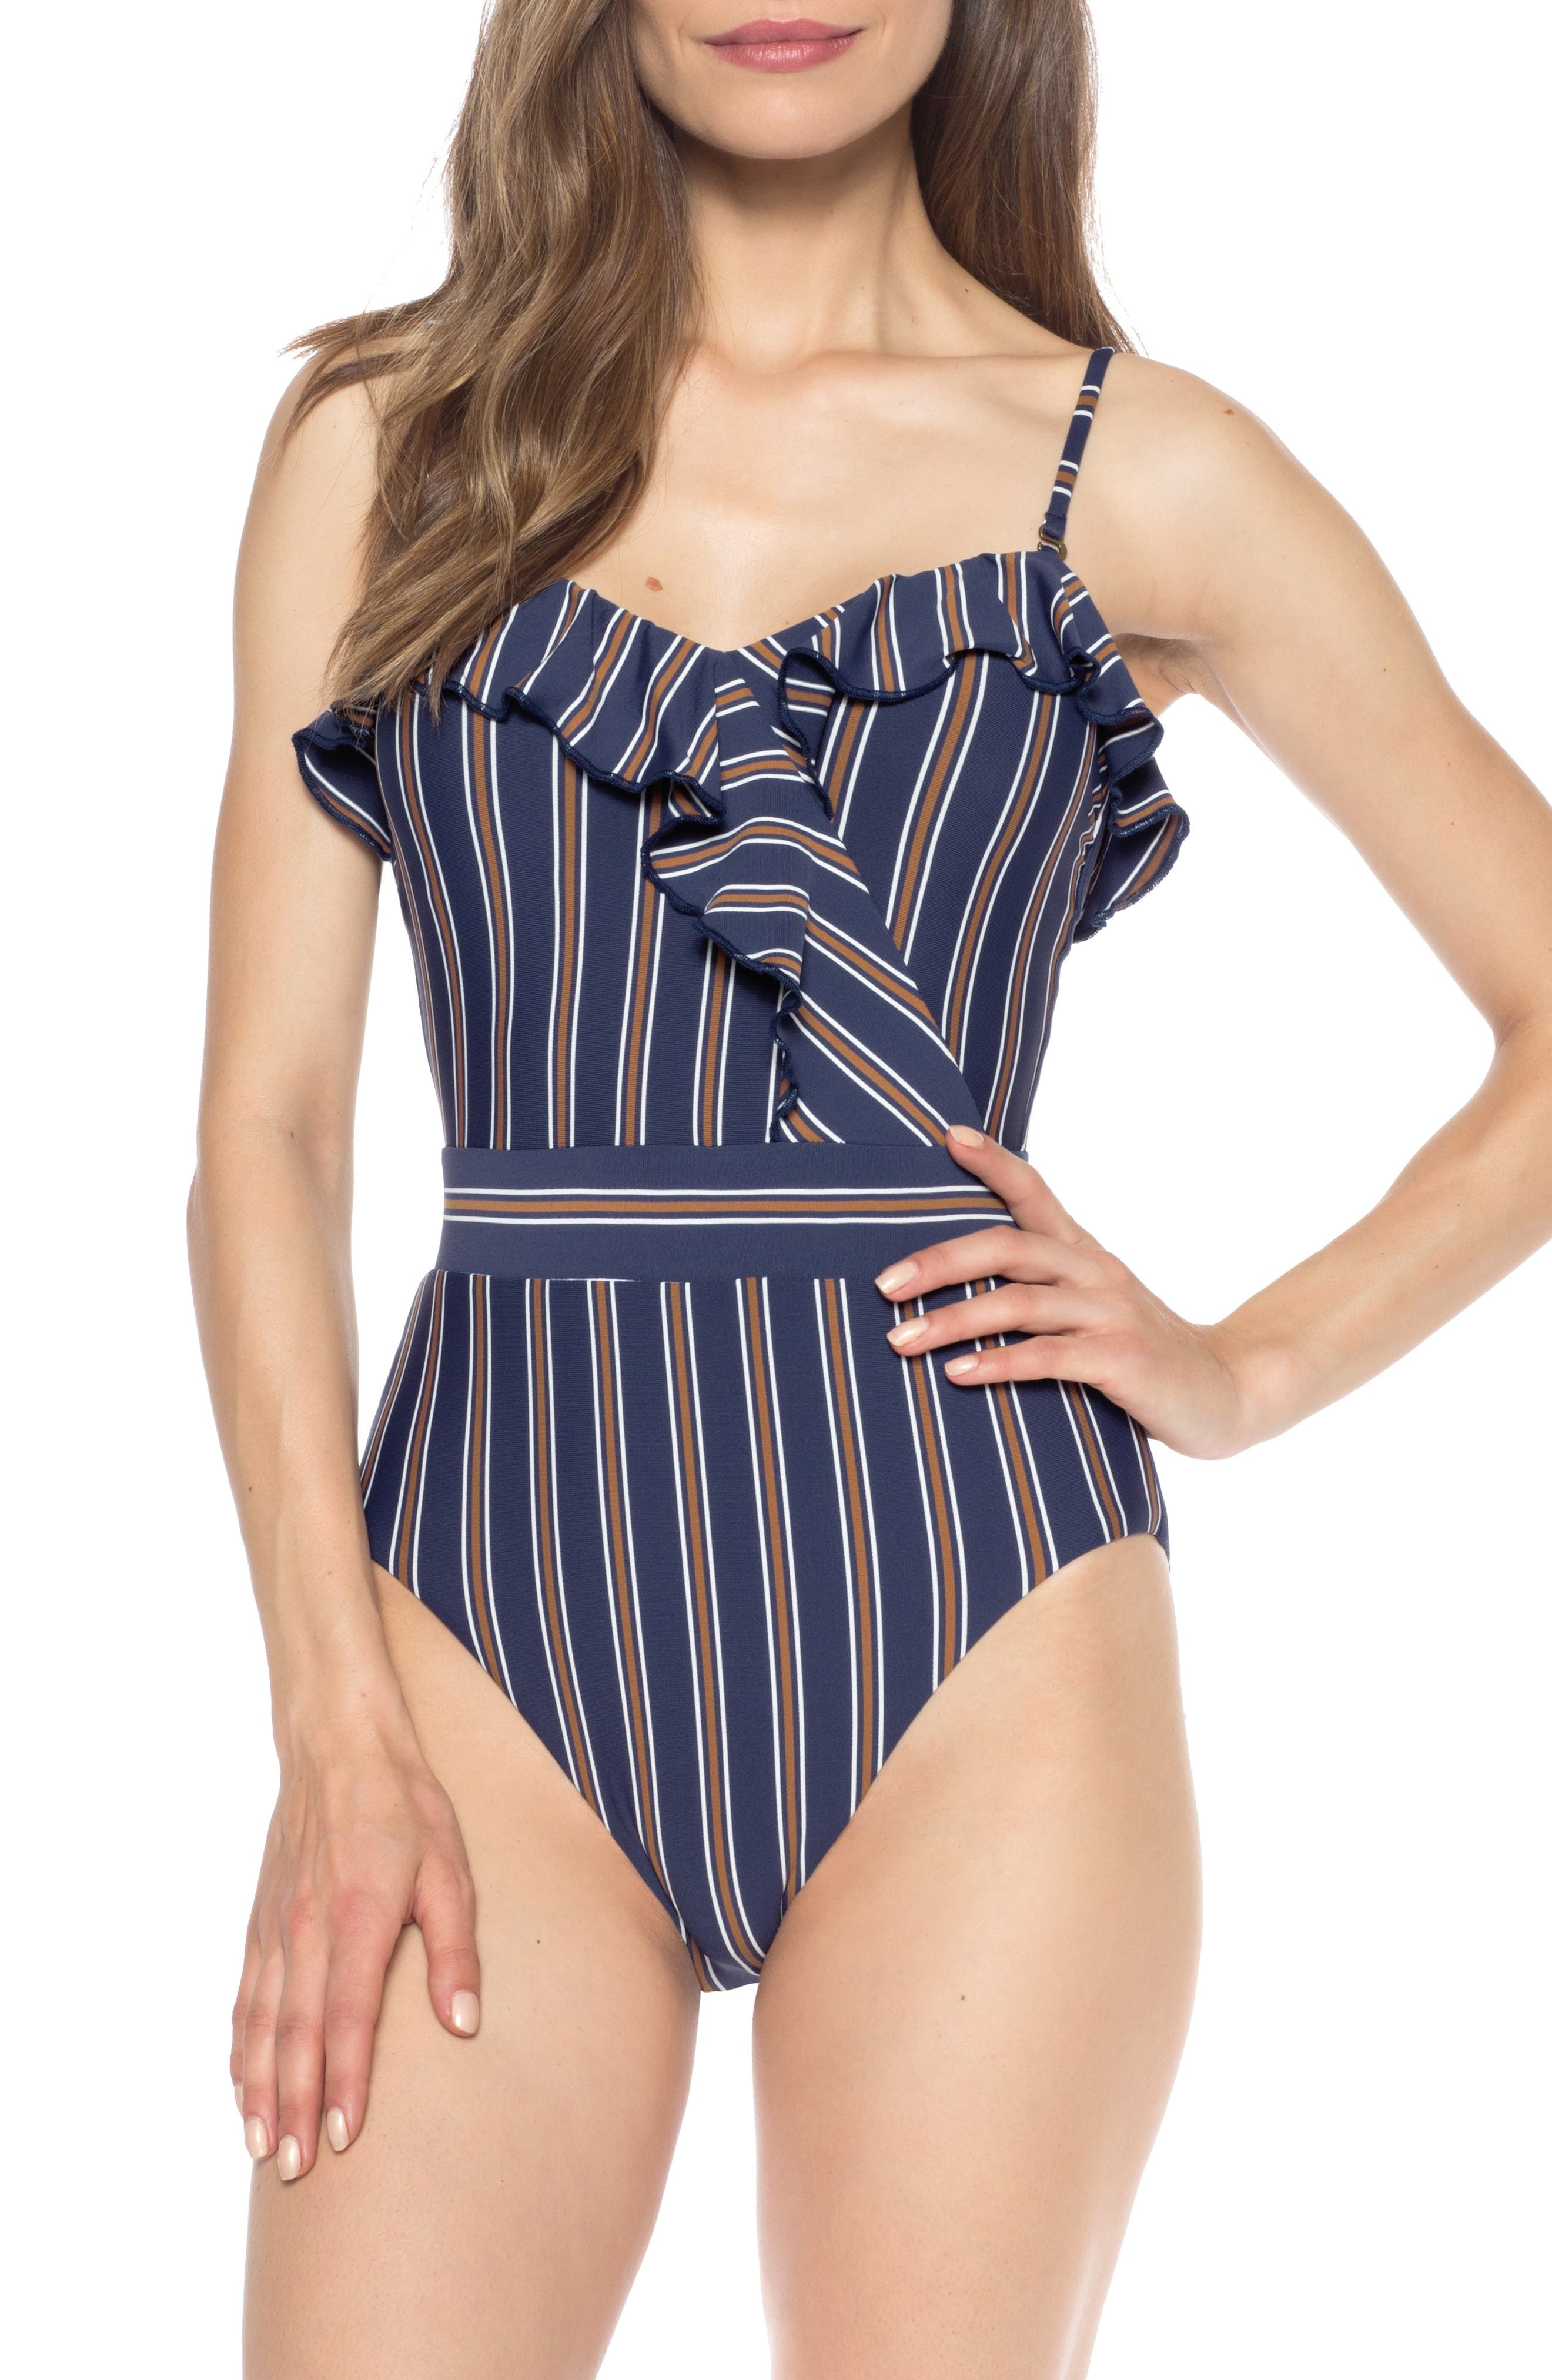 Isabella Rose Broadway One-Piece Convertible Bathing Suit